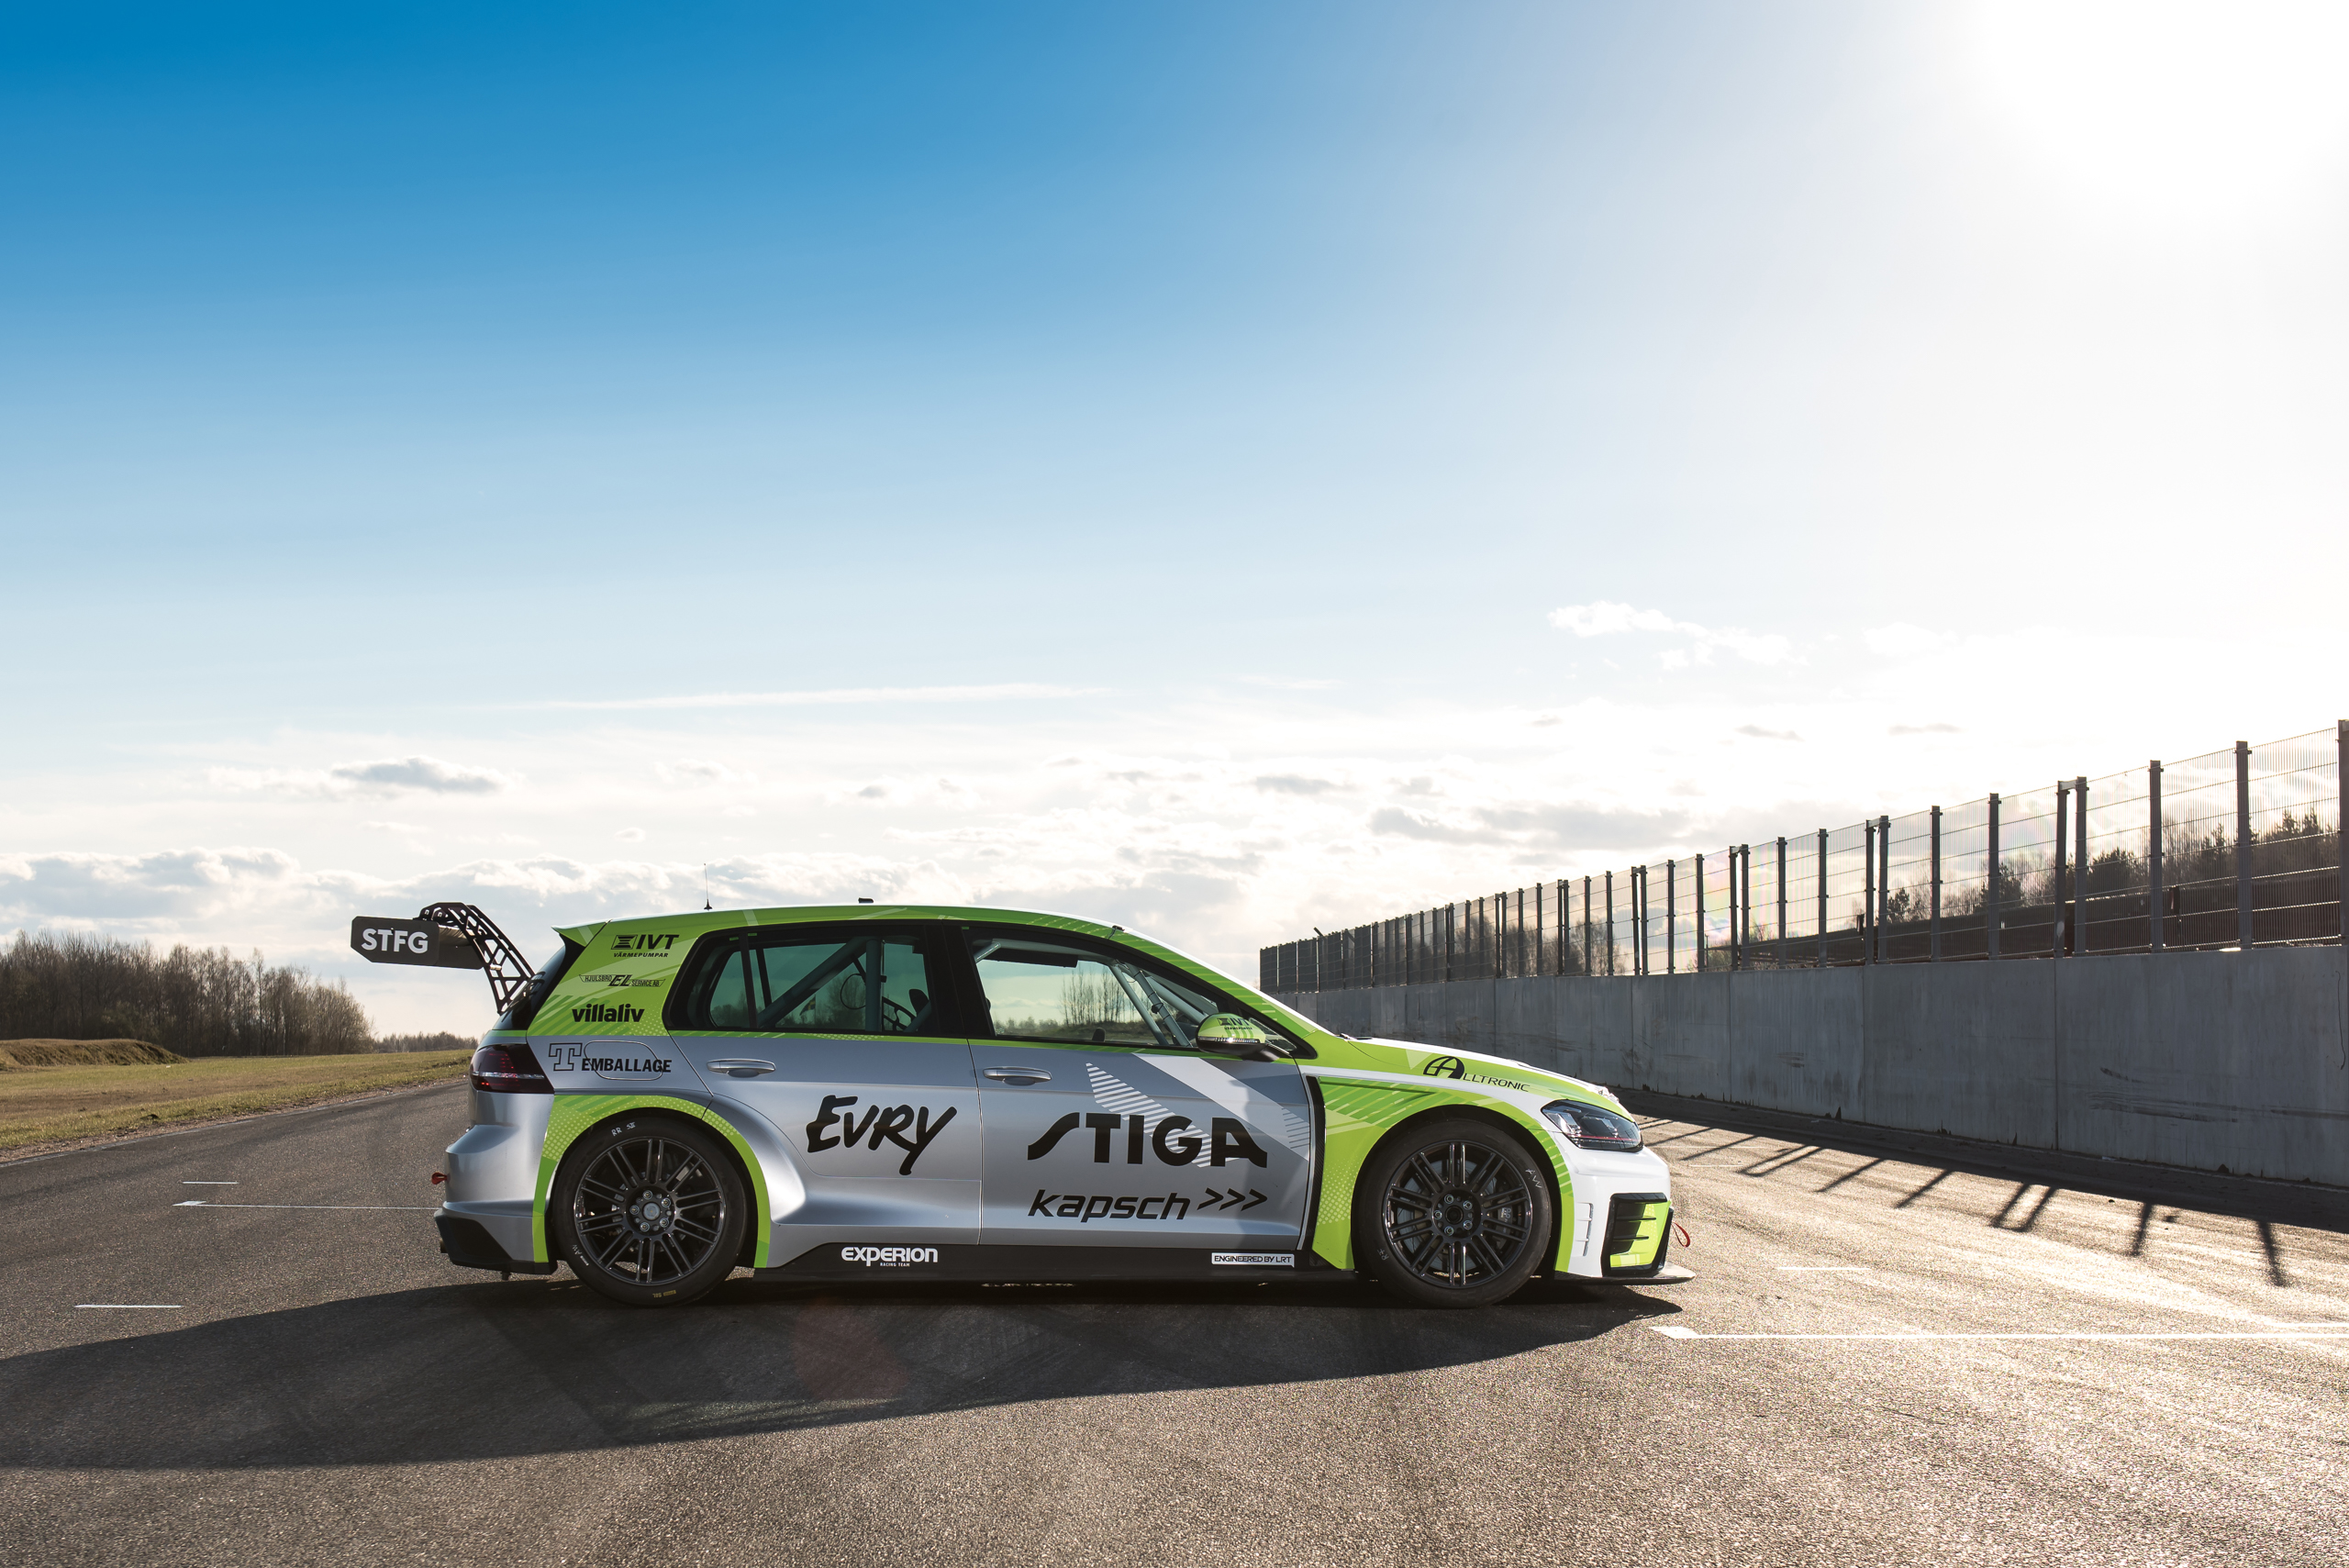 Experion racing teams Volkswagen Golf TCR med sponsorer IVT, Villaliv, Every, Stiga, Kapsch.